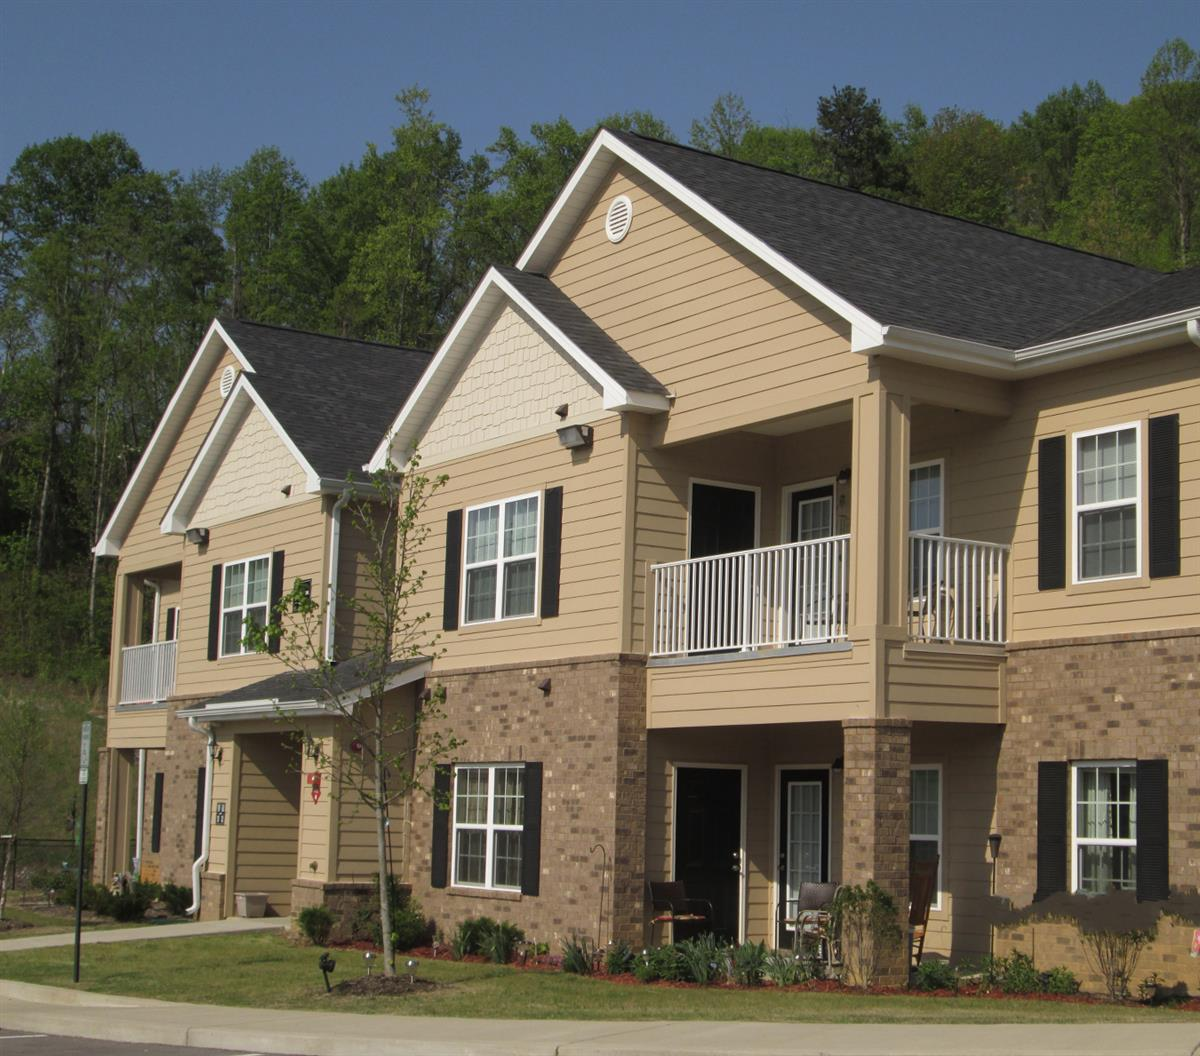 Bristol Park Apartments: Apartments In Johnson City, Kingsport, Bristol,Tri-City, TN